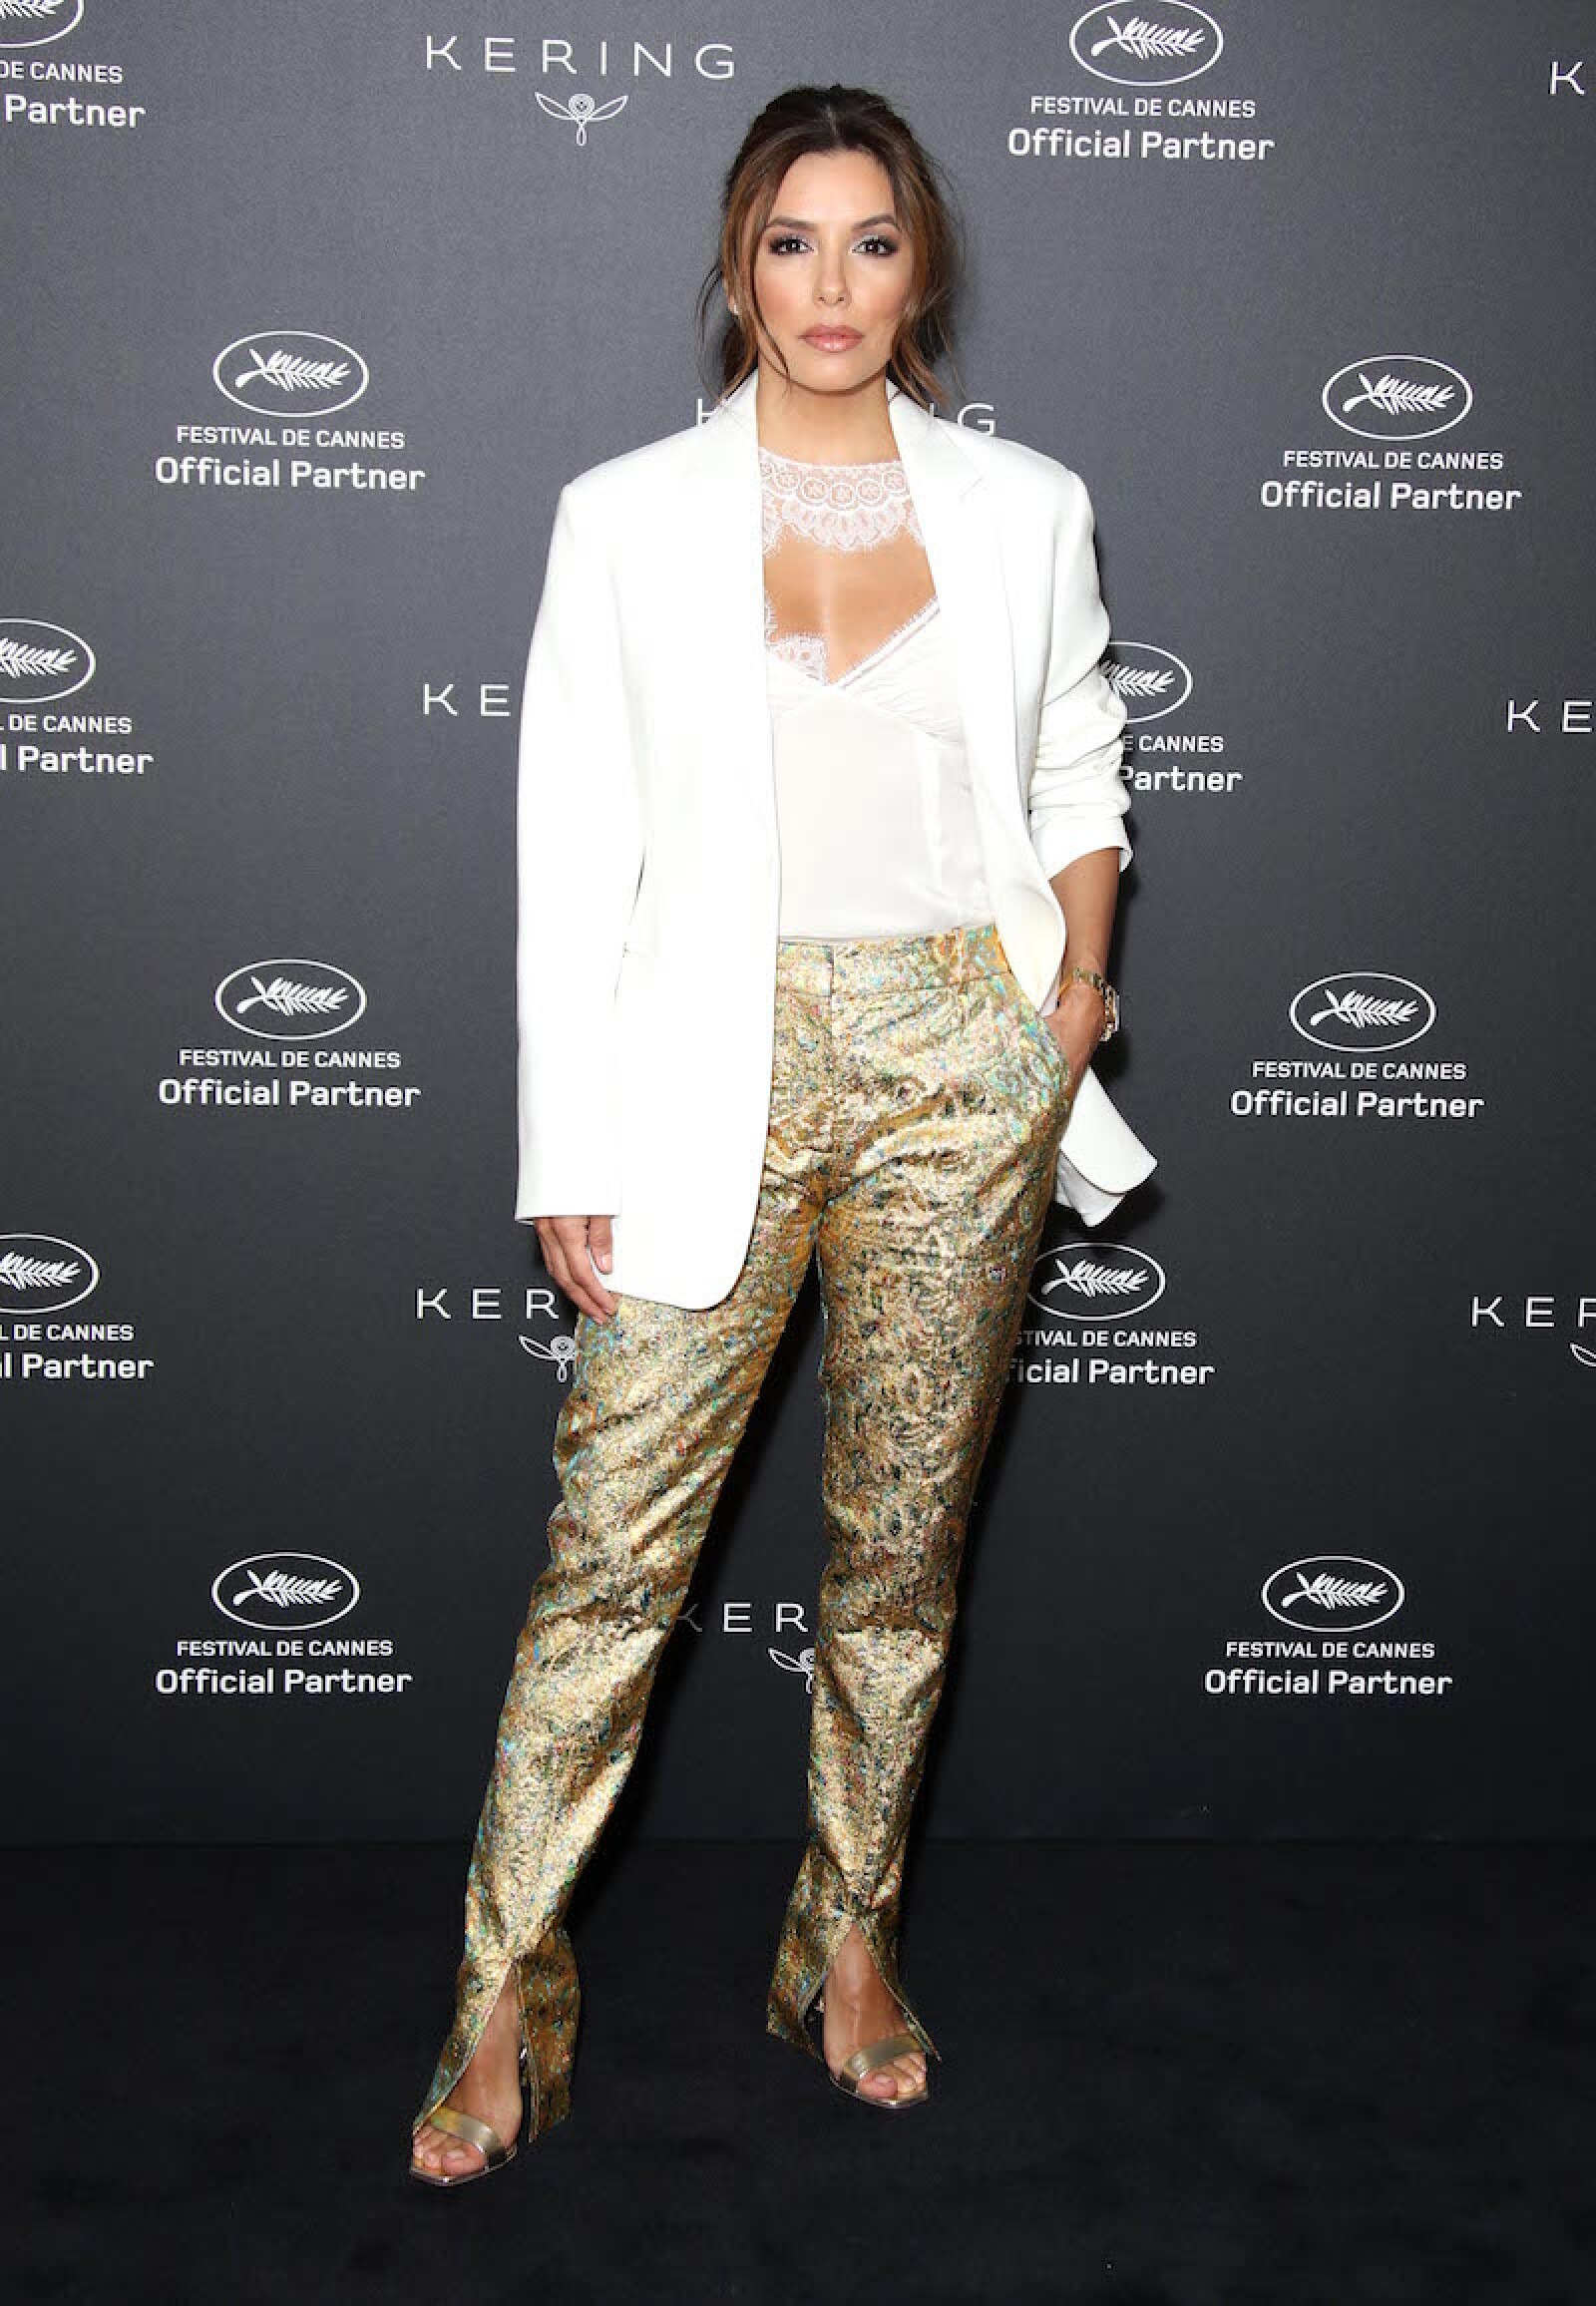 Kering Women in Motion Talk with Eva Longoria Photocall - The 72nd Annual Cannes Film Festival